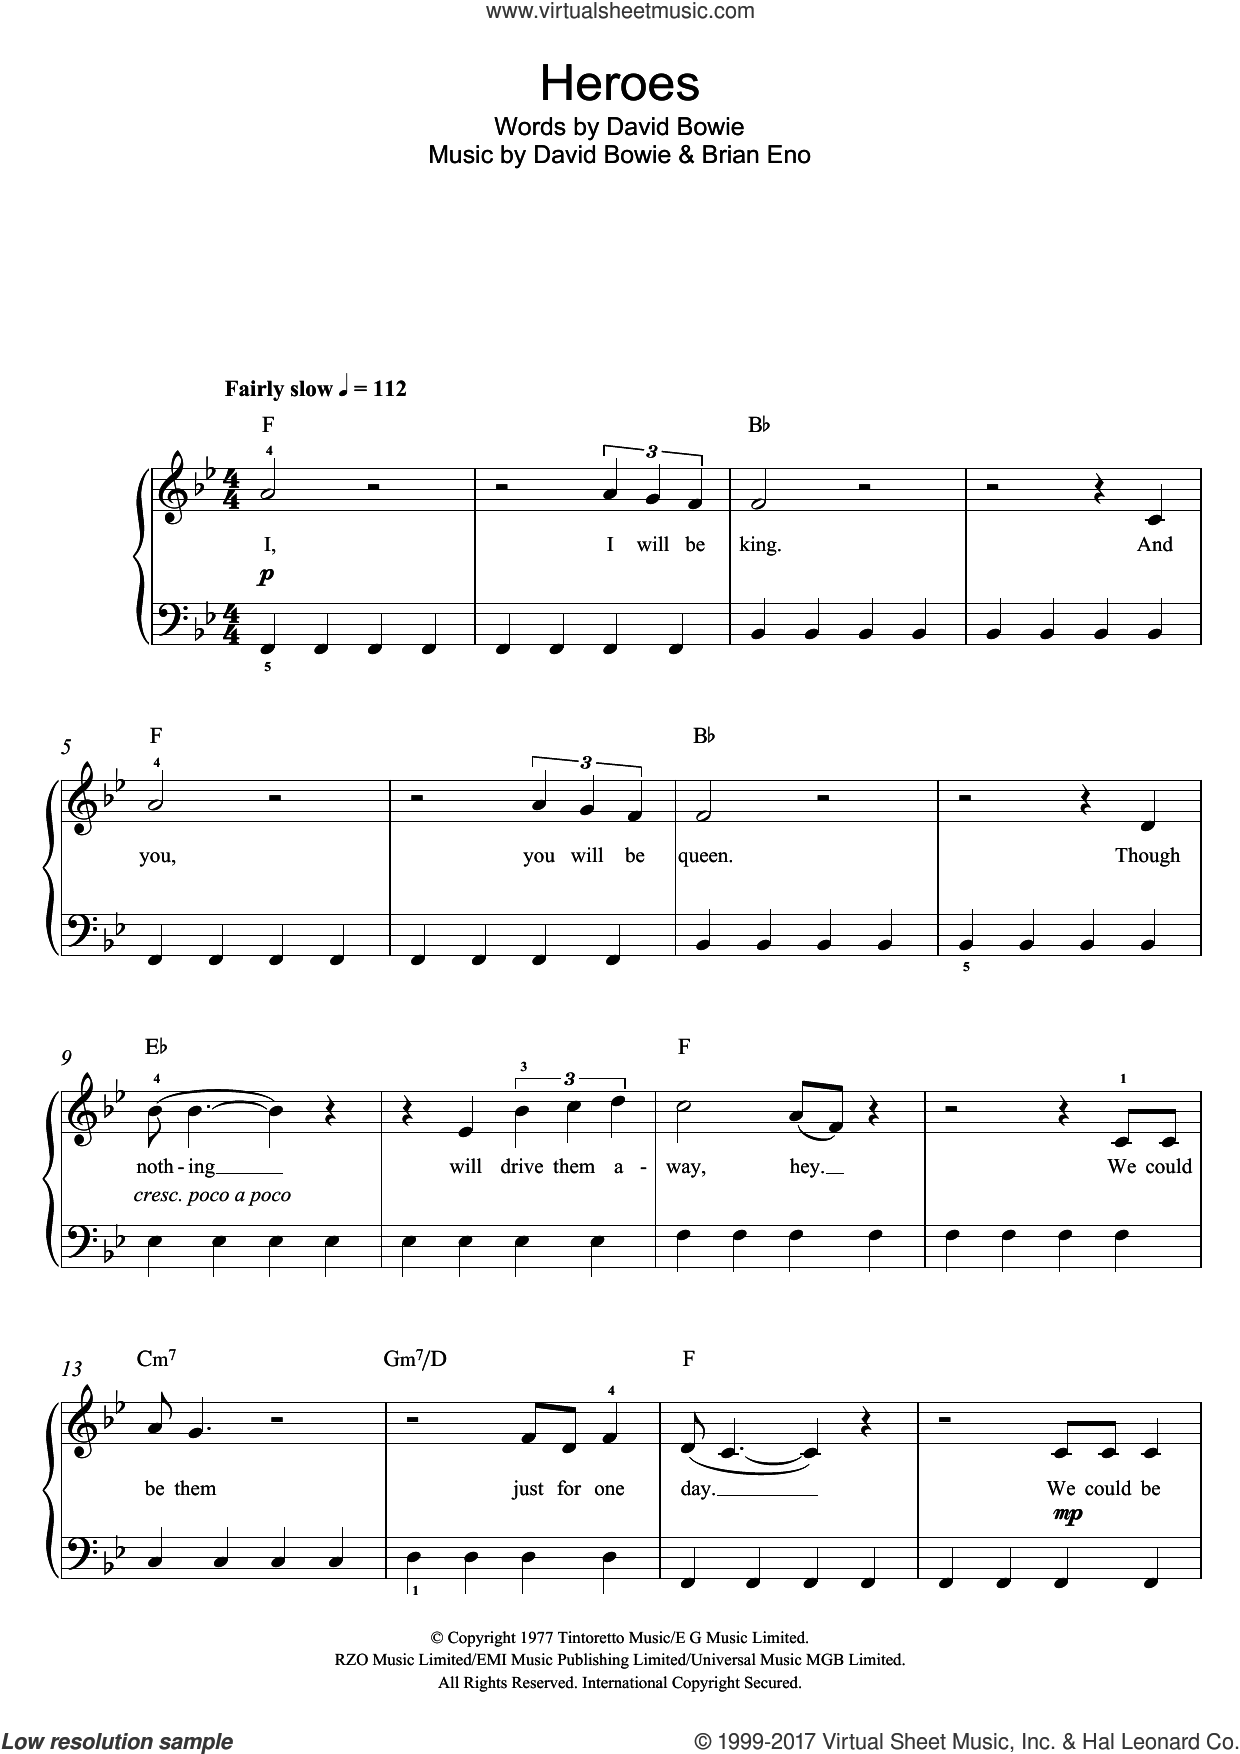 Heroes sheet music for voice, piano or guitar by David Bowie and Brian Eno, intermediate skill level